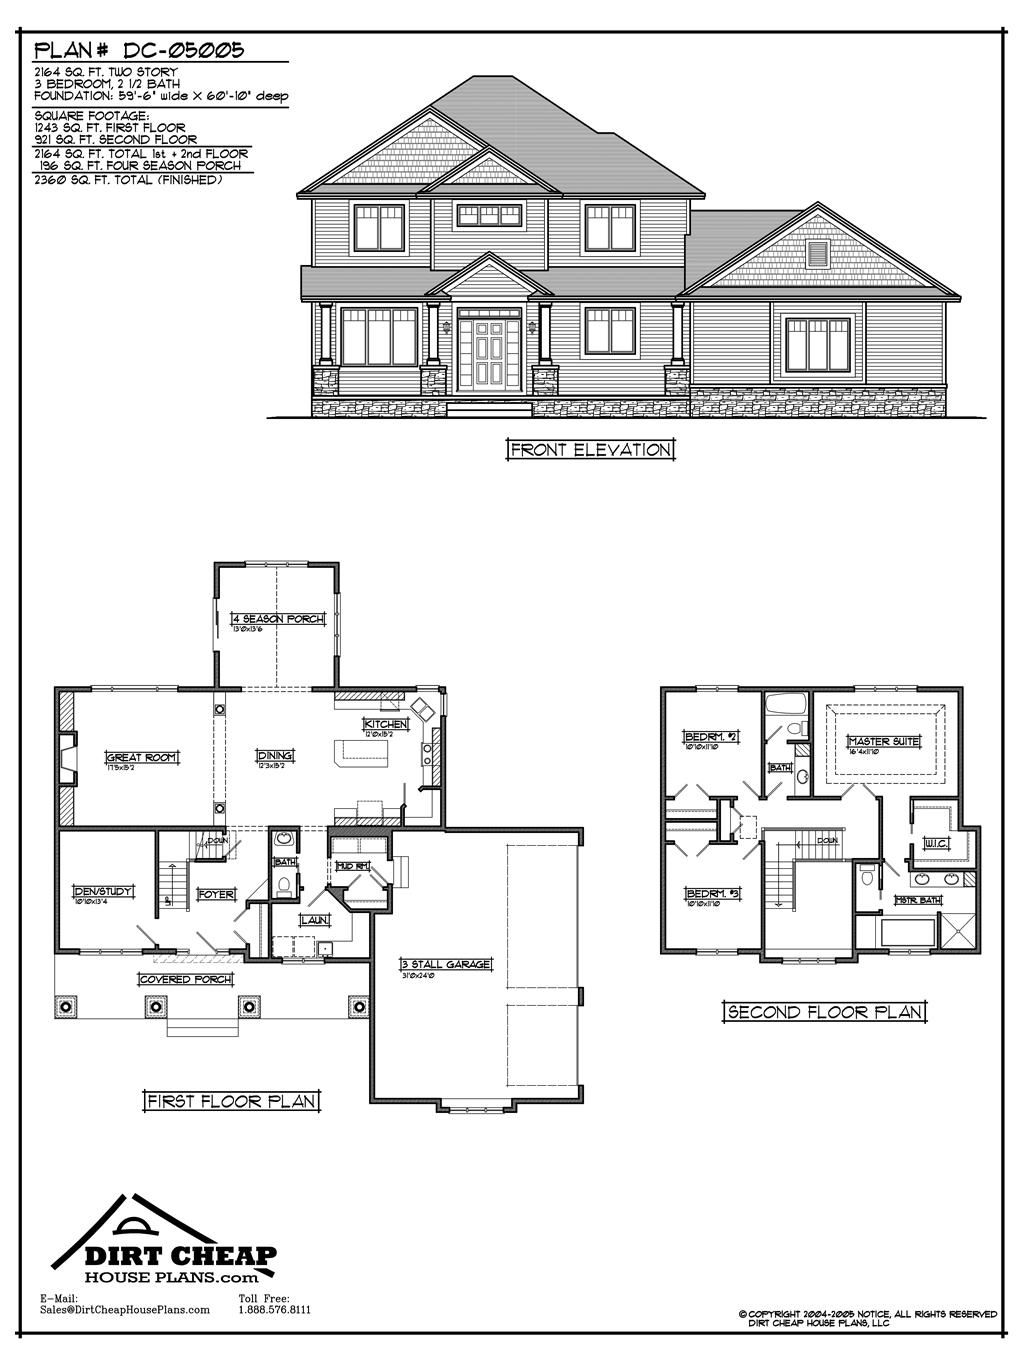 Pin By Jessica Wymer On New House Two Story House Plans House Plans Dream House Plans